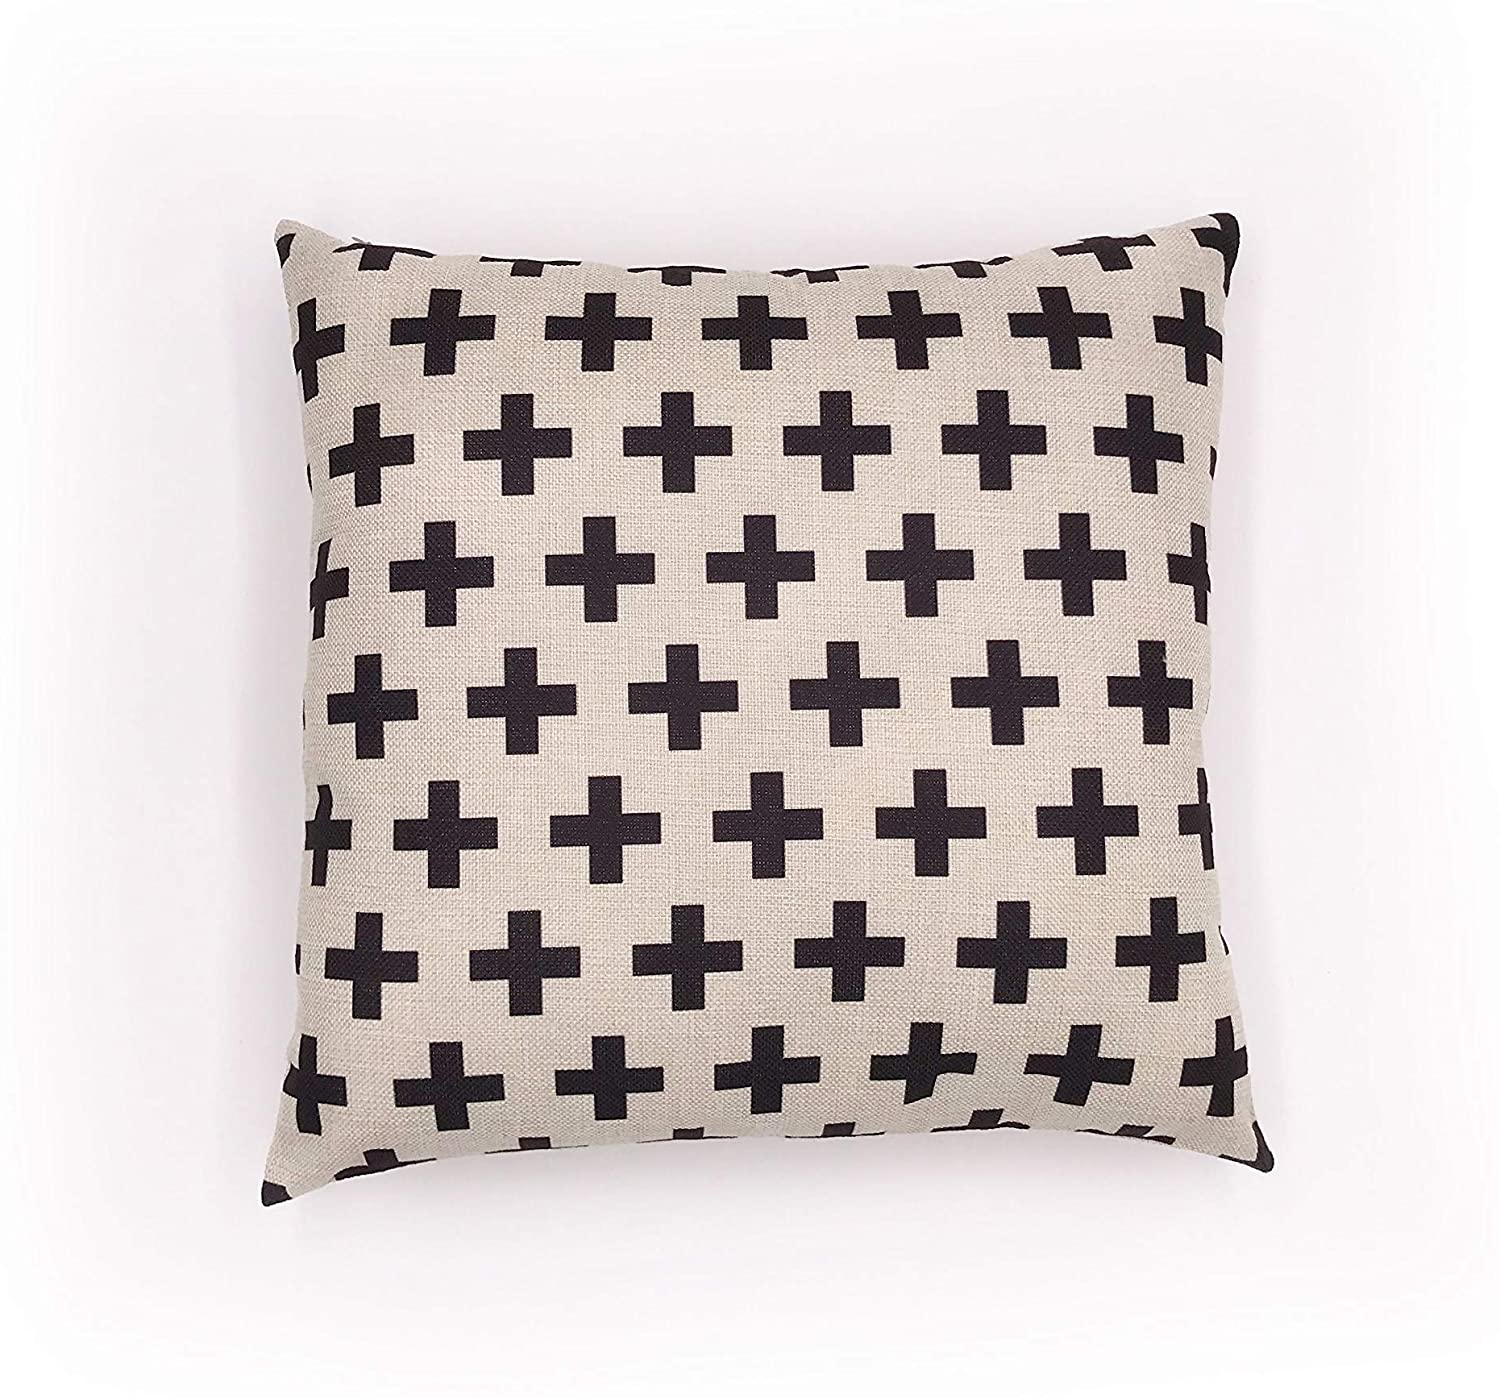 Swiss Cross Pillow Cover - Linen Throw Cushion Covers Home Decorative for Sofa - 18 x 18 Inch - Cross in Cream White